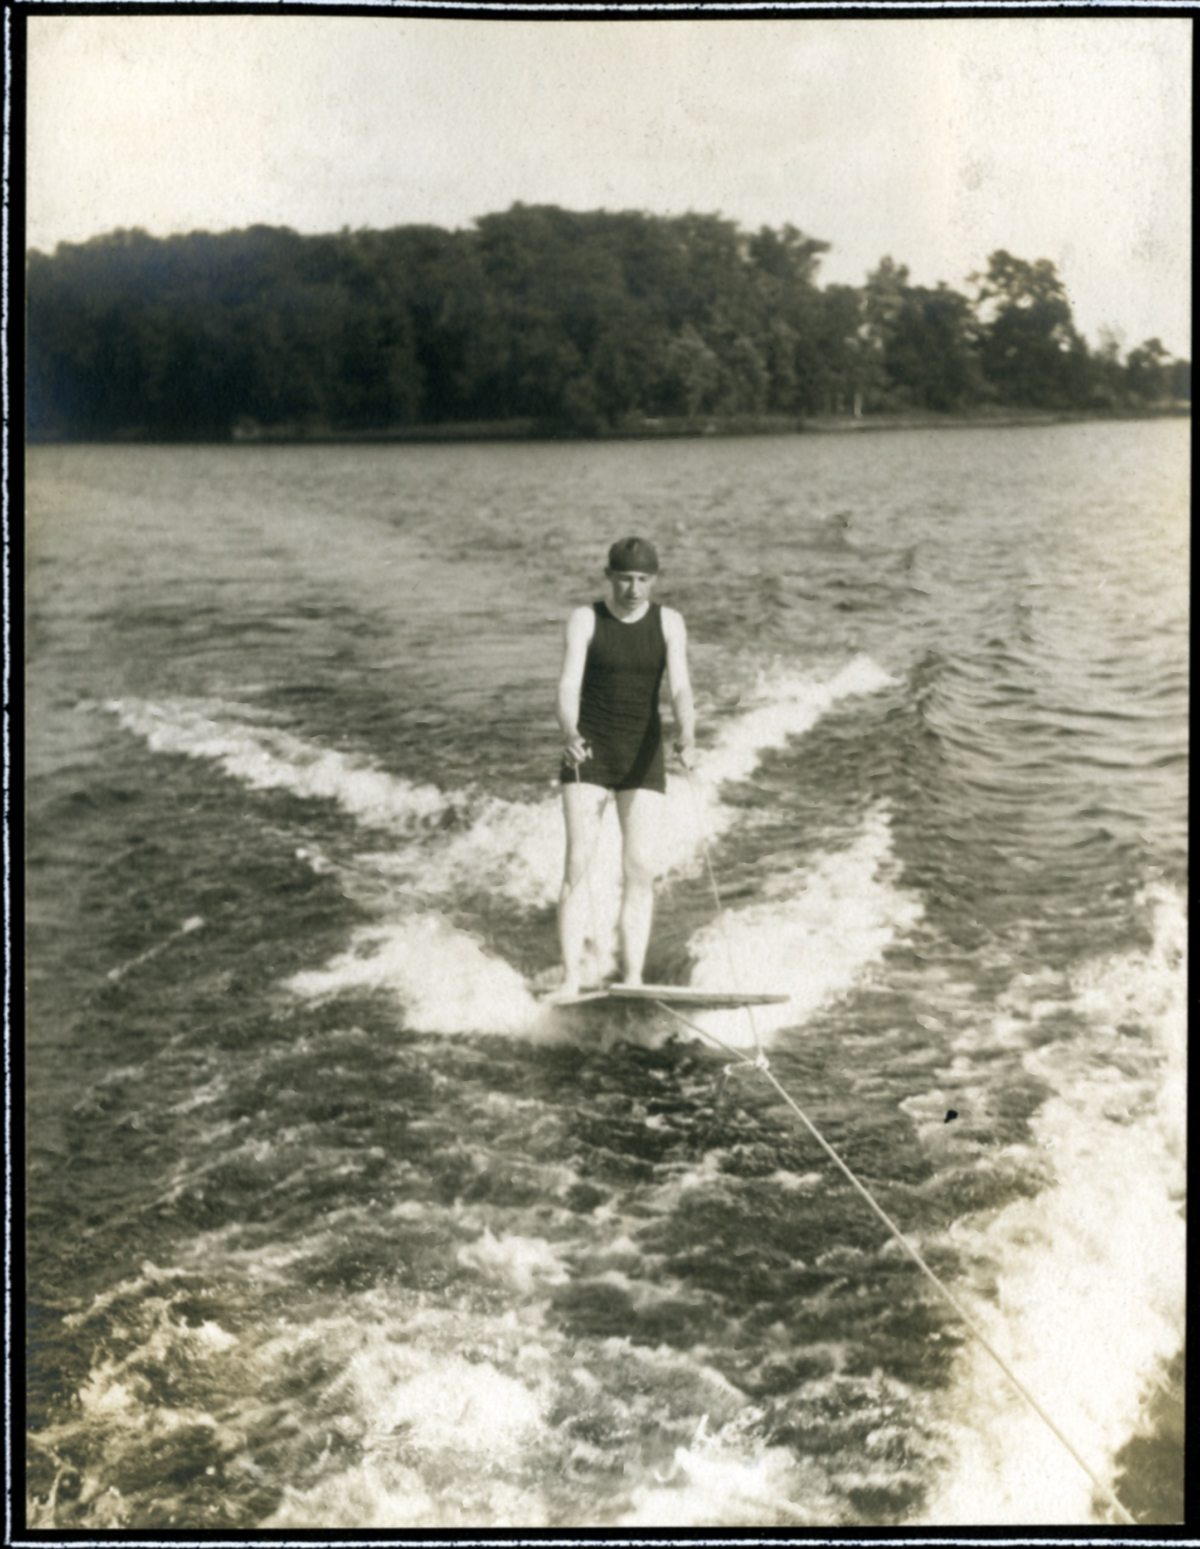 Water skiing at Stout's Island Lodge